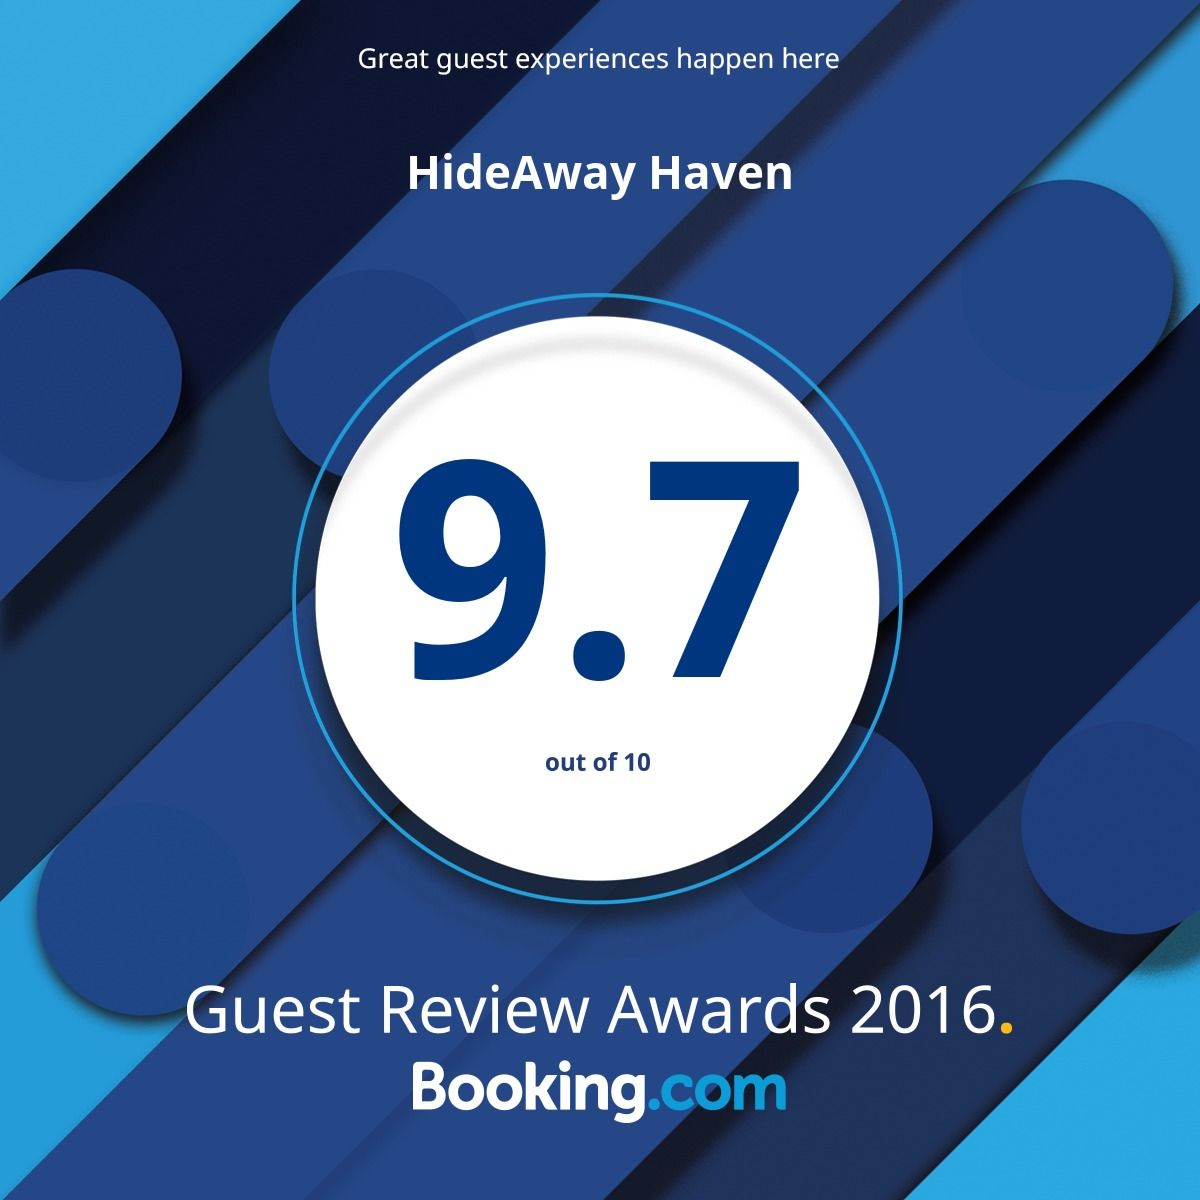 Guest Review Award 2016 Booking.com HideAway Haven